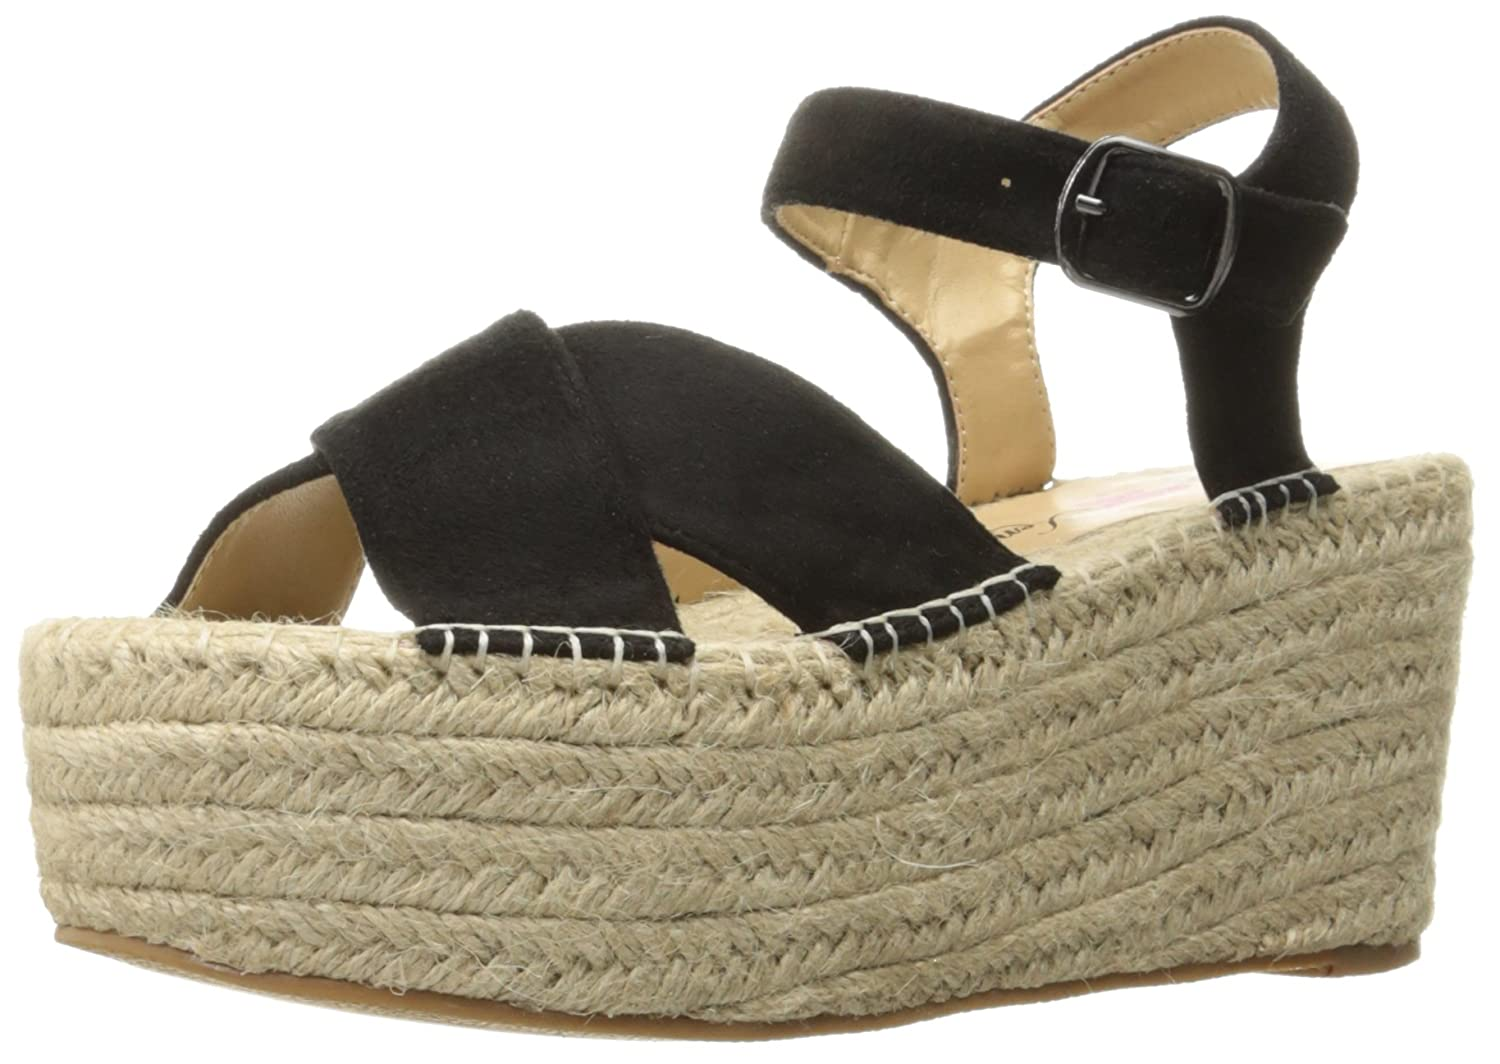 Penny Loves Kenny Women's Friend Platform Sandal B01MYZG4UQ 9.5 B(M) US|Black